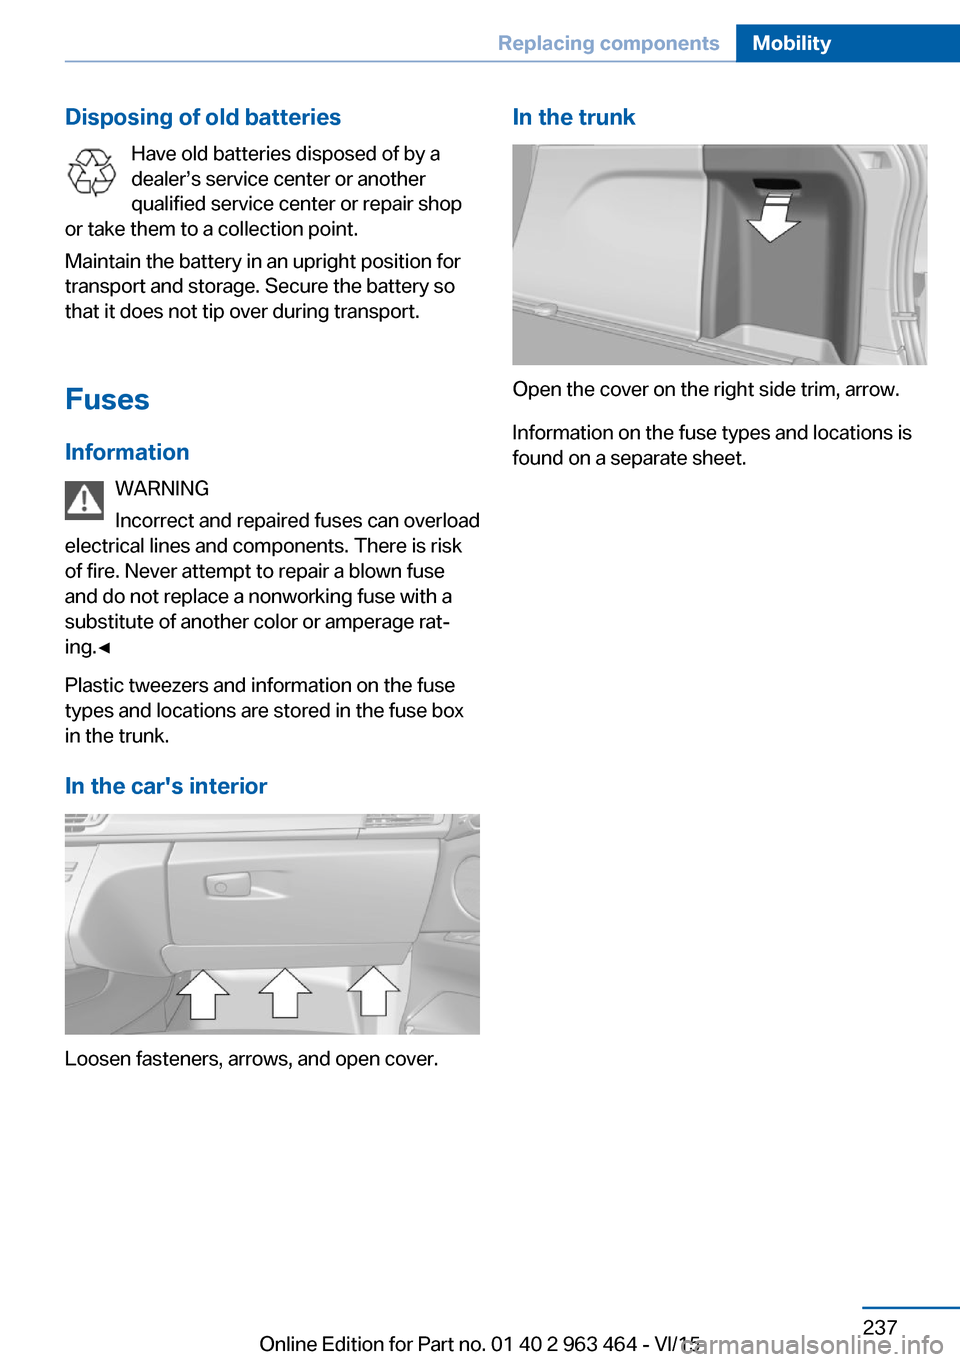 Bmw X6 2015 F16 Owners Manual Car Fuse Box Page 237